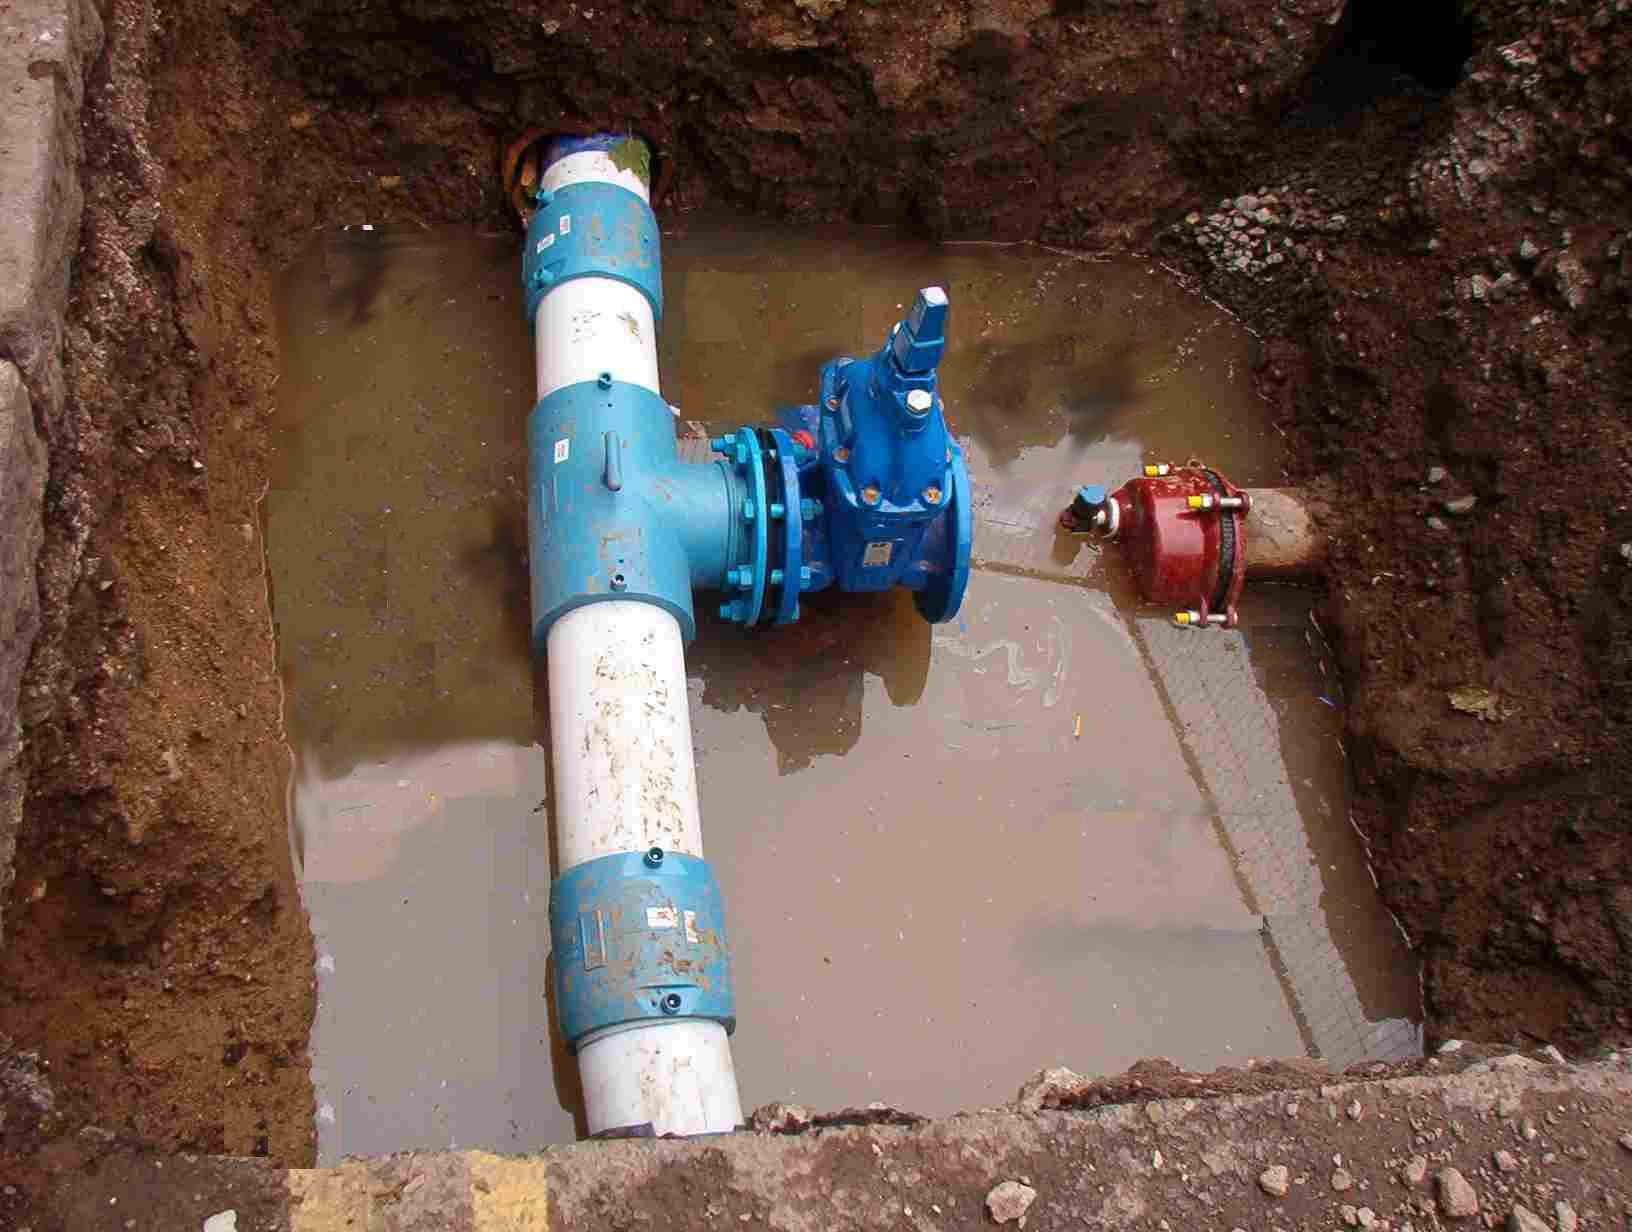 So what is a Trenchless Technology Consultant?